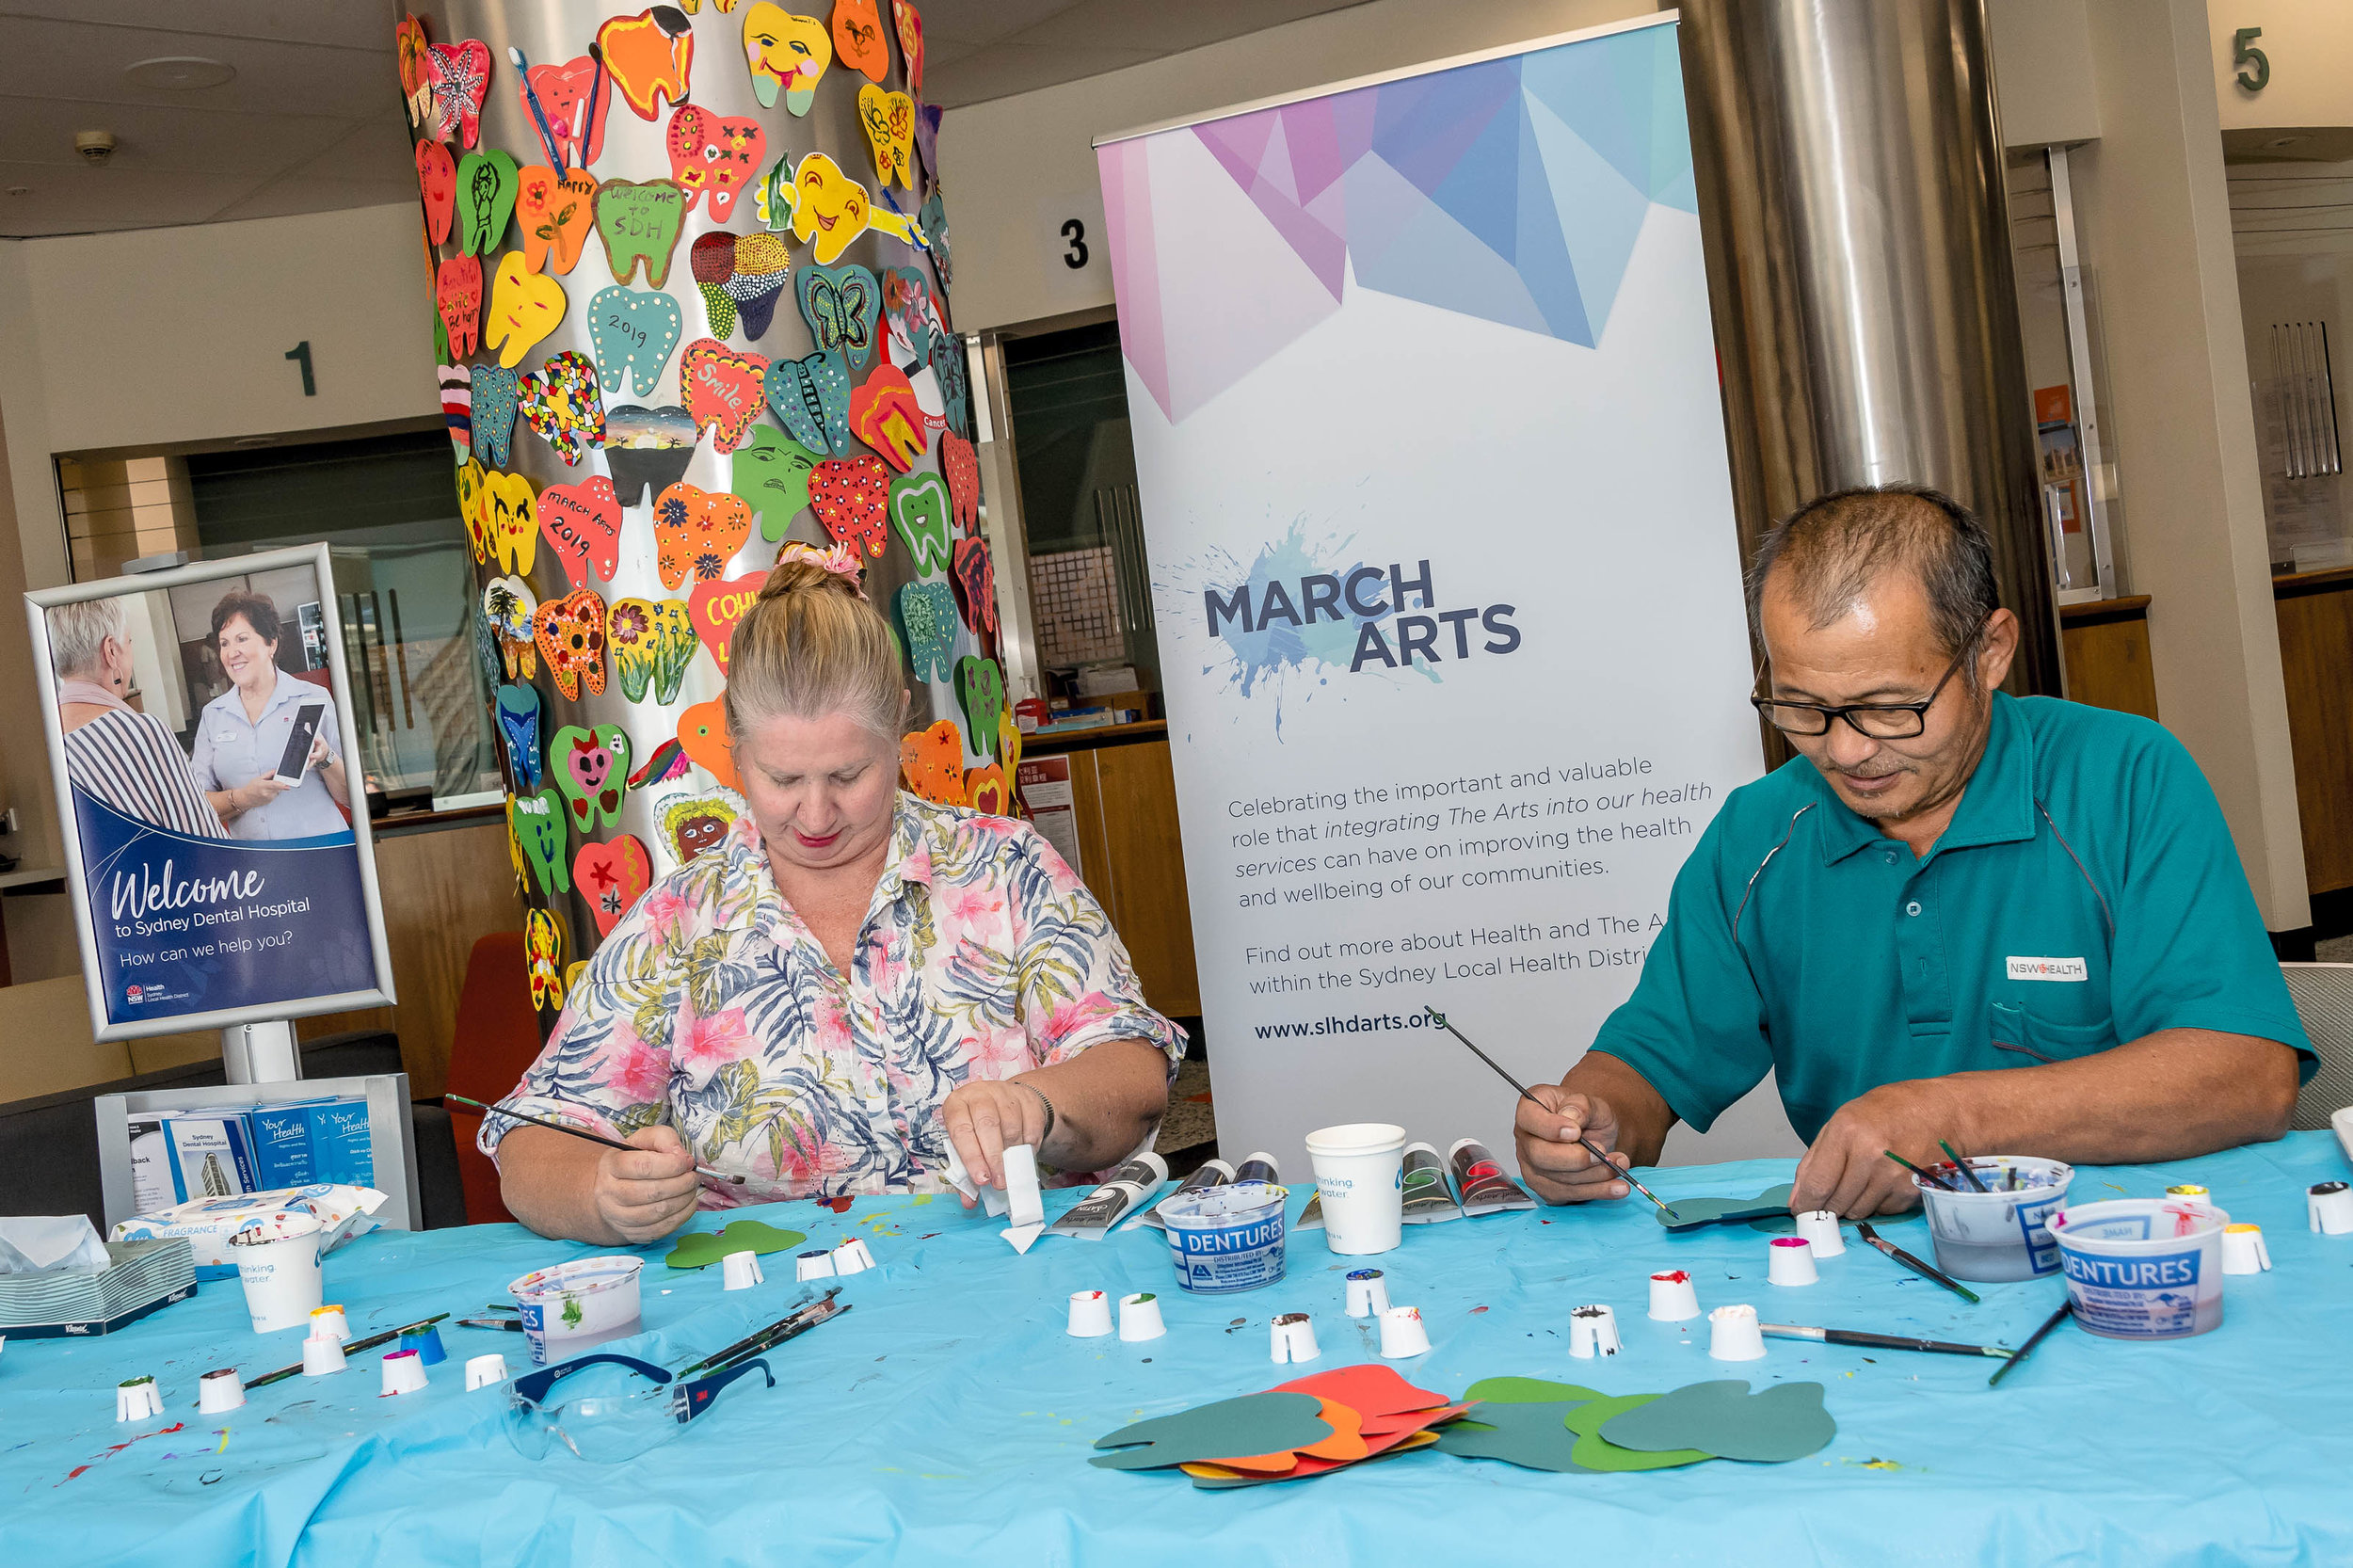 86365 March Arts Sydney Dental Hosp Colour Competition 20190326 WS2-231758.jpg